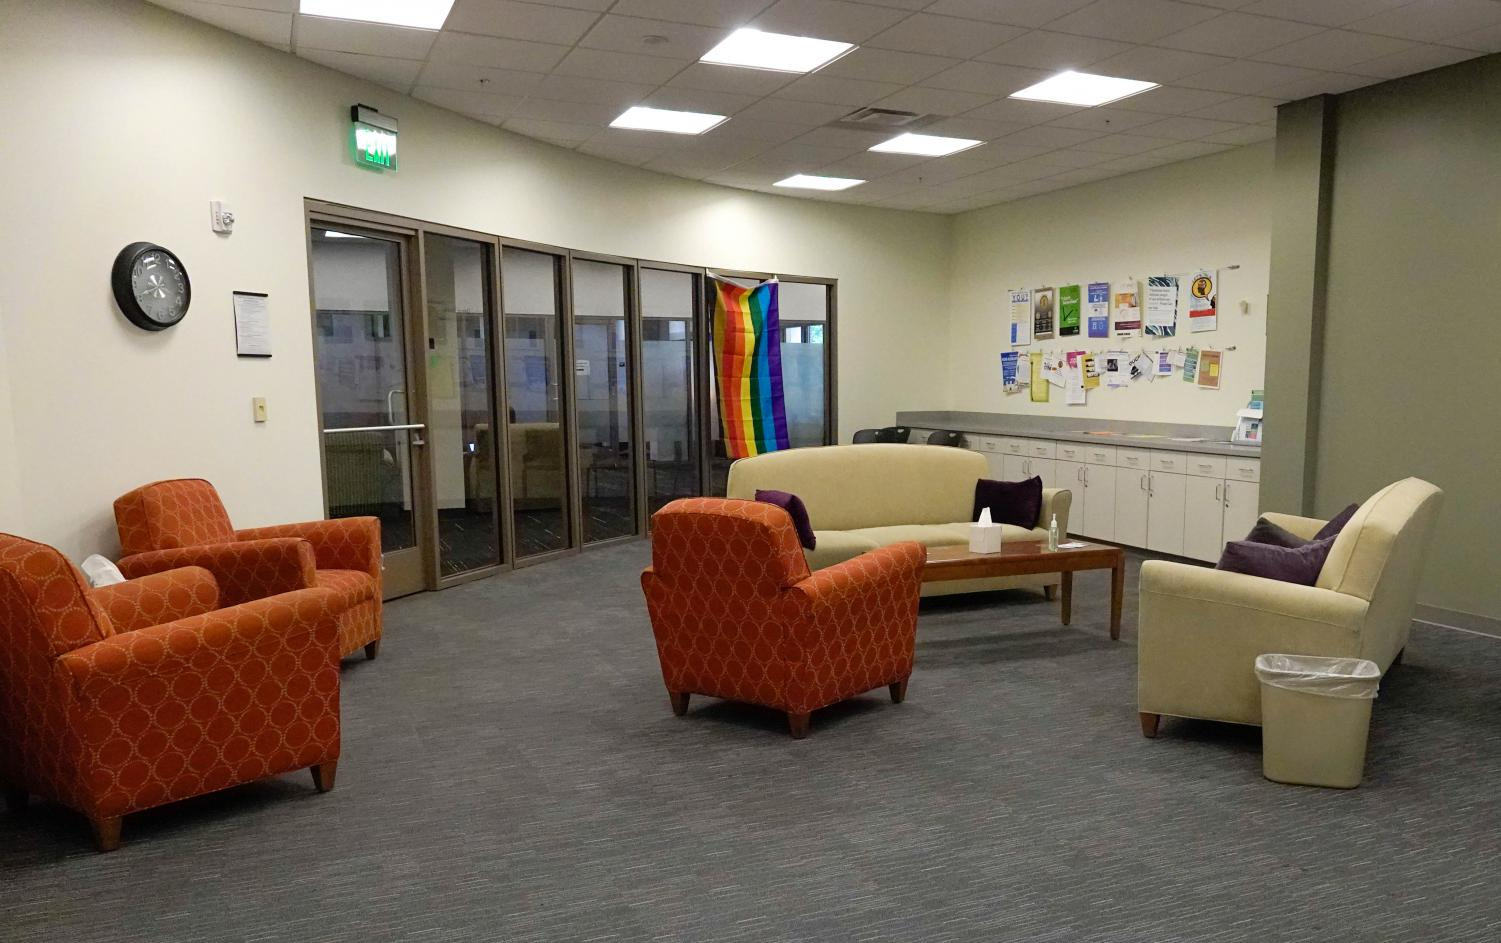 The OSCC's new, larger space in Rand Suite 305. (Photo by Mattigan Kelly)